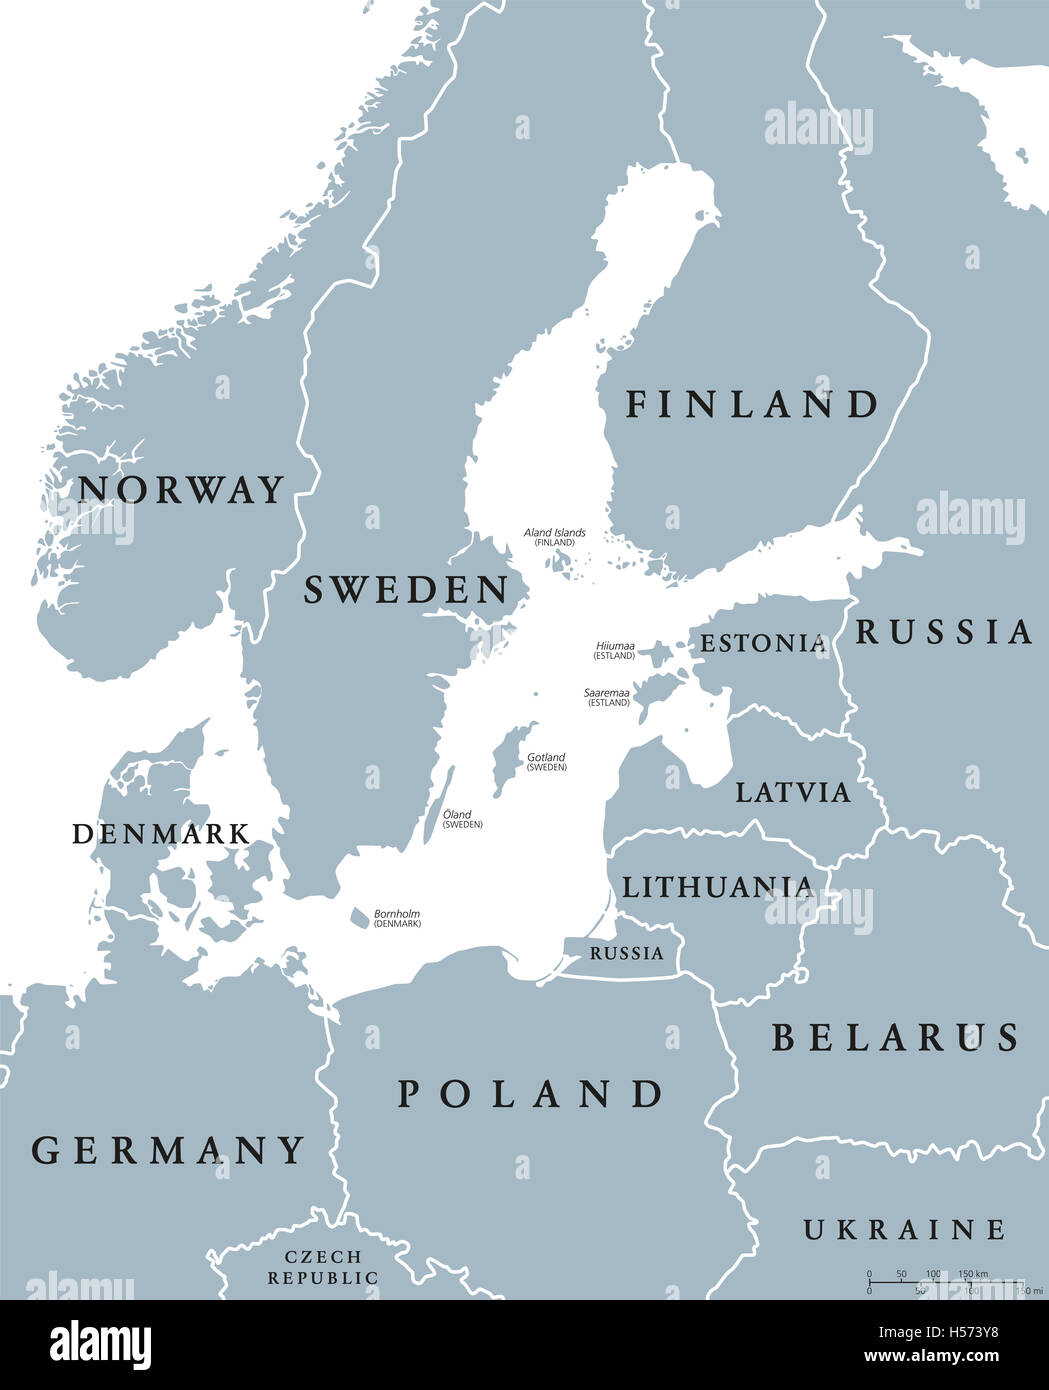 Baltic sea area countries political map with national borders baltic sea area countries political map with national borders nations and states of scandinavia sciox Image collections